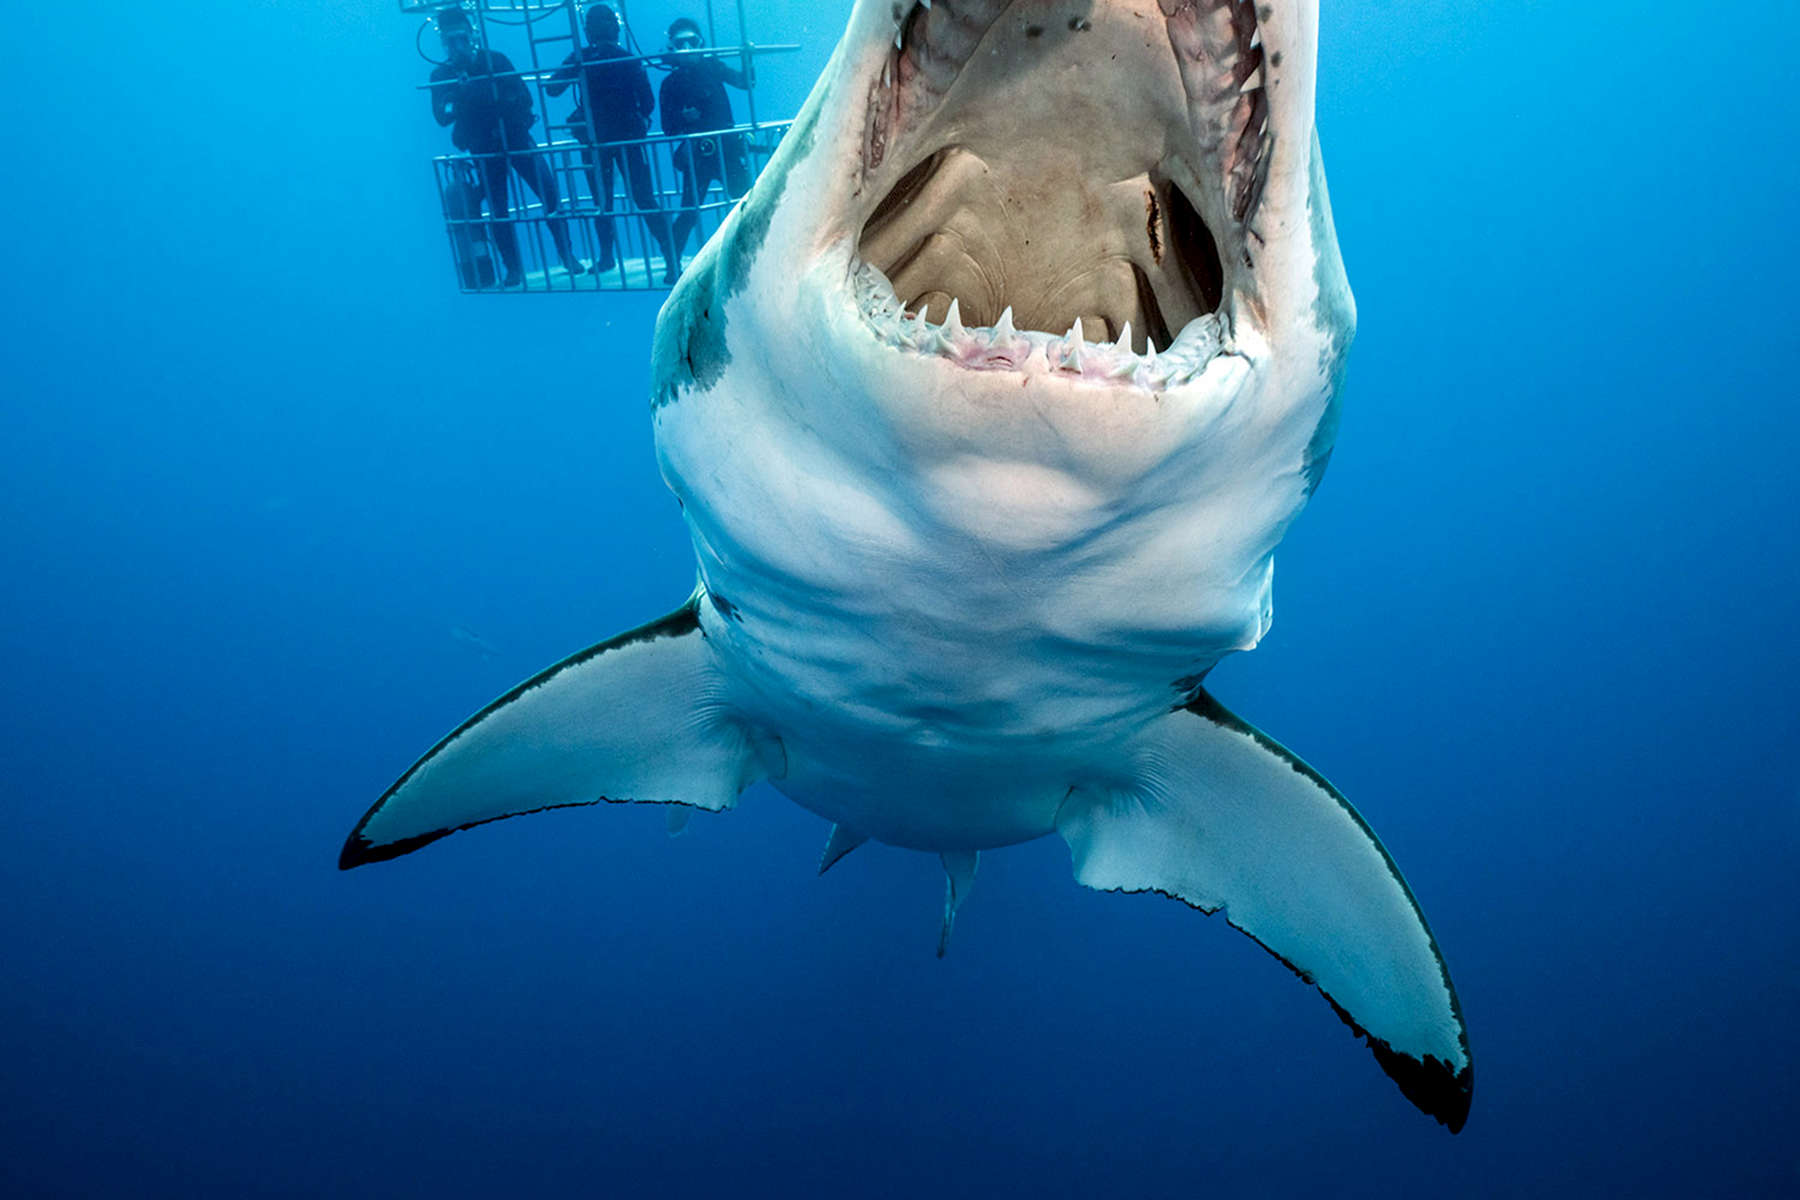 Isla Guadalupe, Mexico - November 11, 2015: A female great white shark inspects a piece of hanging bait as she swims past several dive cages. In other dive locations around the world, many tour operators {quote}chum{quote} the water, spilling blood and fresh food into the sea, hoping to start a shark feeding frenzy. Most if not all of the operators working within the waters of Isla Guadalupe have taken a different tack. As the eco-tourism market has grown, so has the goal of not habituating sharks to human presence. While tourists and divers want to get close to the great white, the goal is not to have the sharks see people and each boat as a source of food. That could lead to dangerous incidents. Rather the frozen tuna {quote}bait{quote} is merely hung, enticing the shark's interest and curiosity, but not enough to feed these massive predators. (Photograph by Benjamin Lowy for The New York Times)